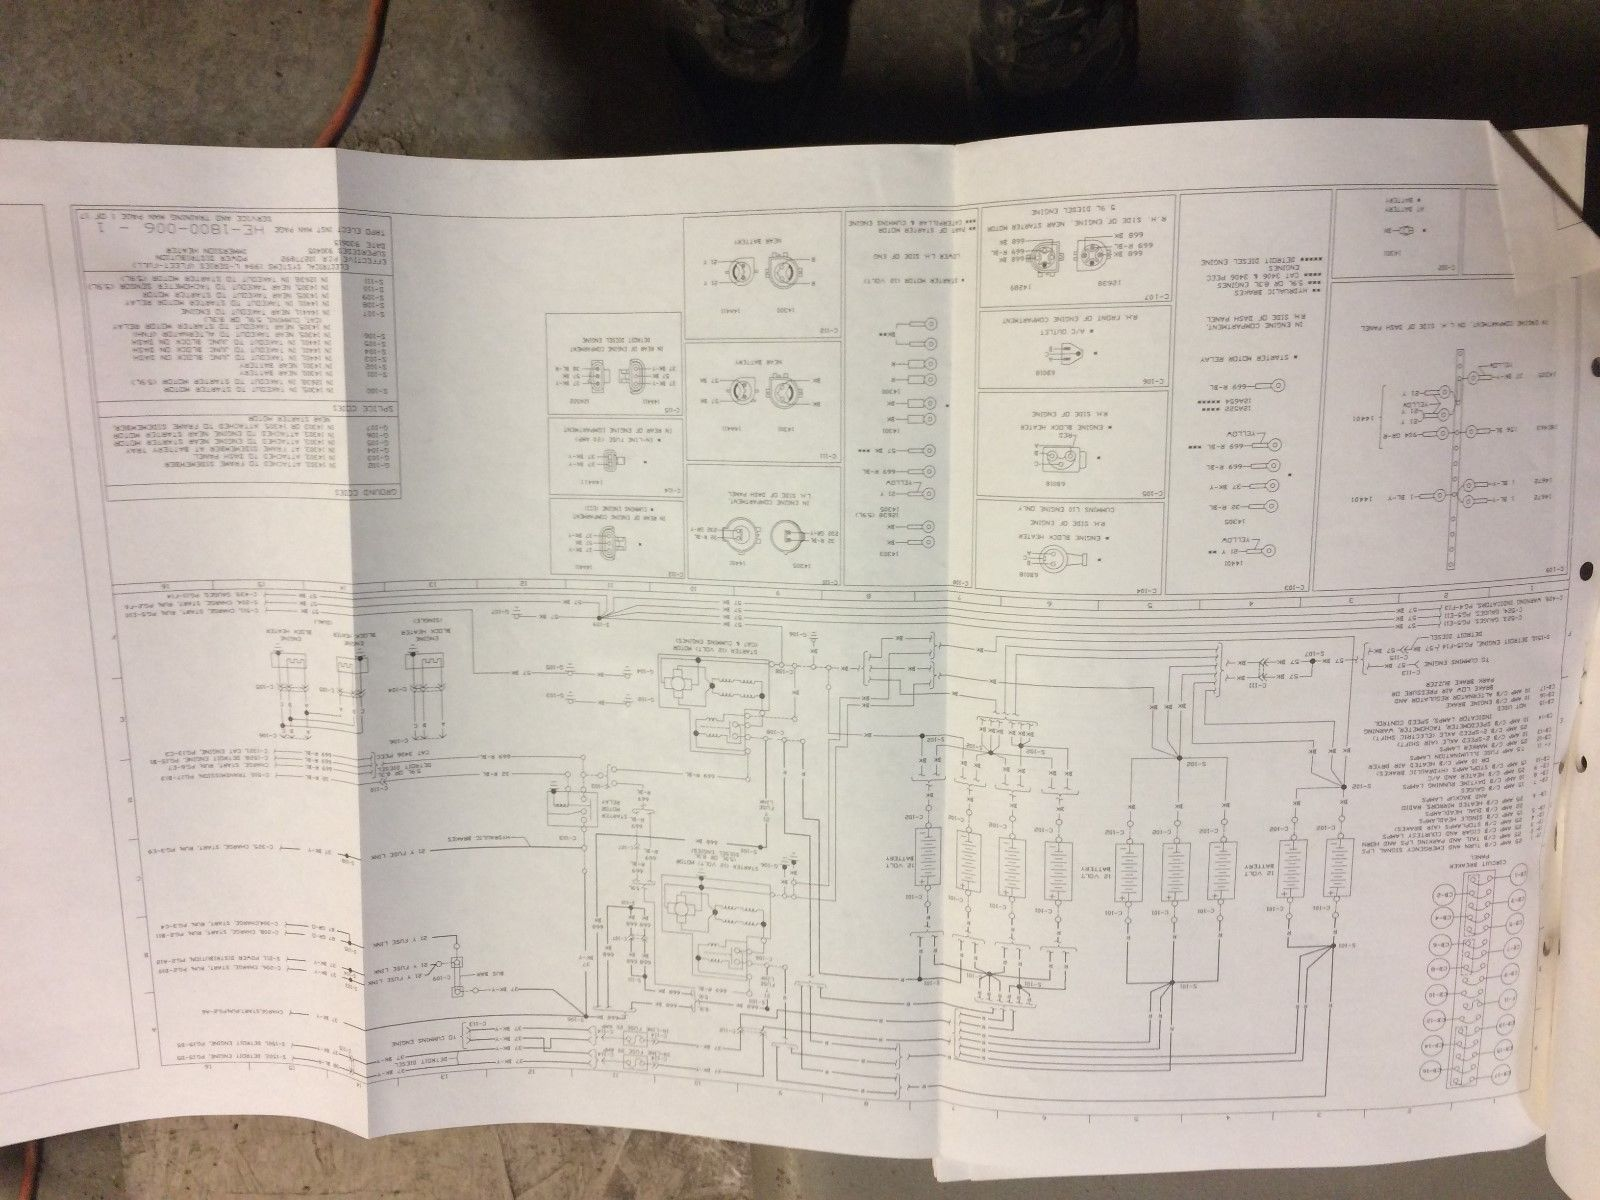 1994 Ford F600 F800 Cab Wiring Diagram And 46 Similar Items Block Diagram  1994 F800 Wiring Diagram